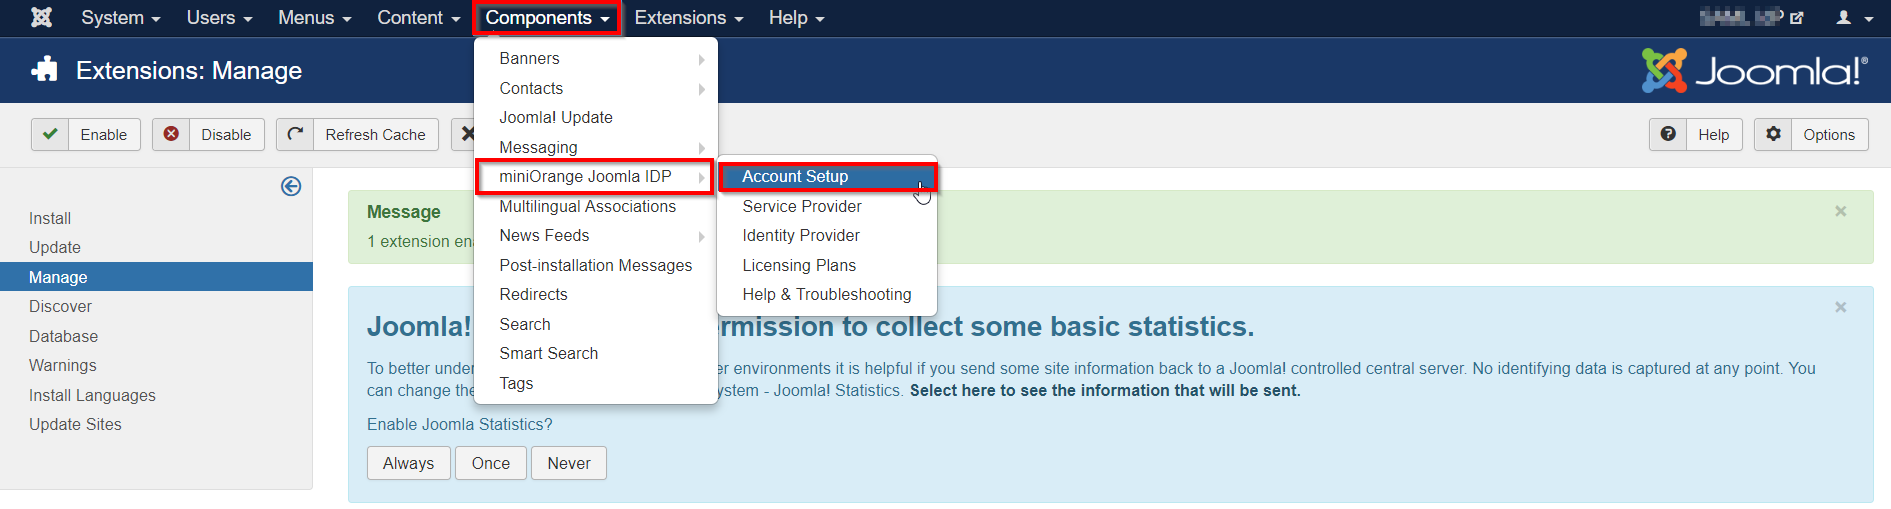 joomla idp account setup